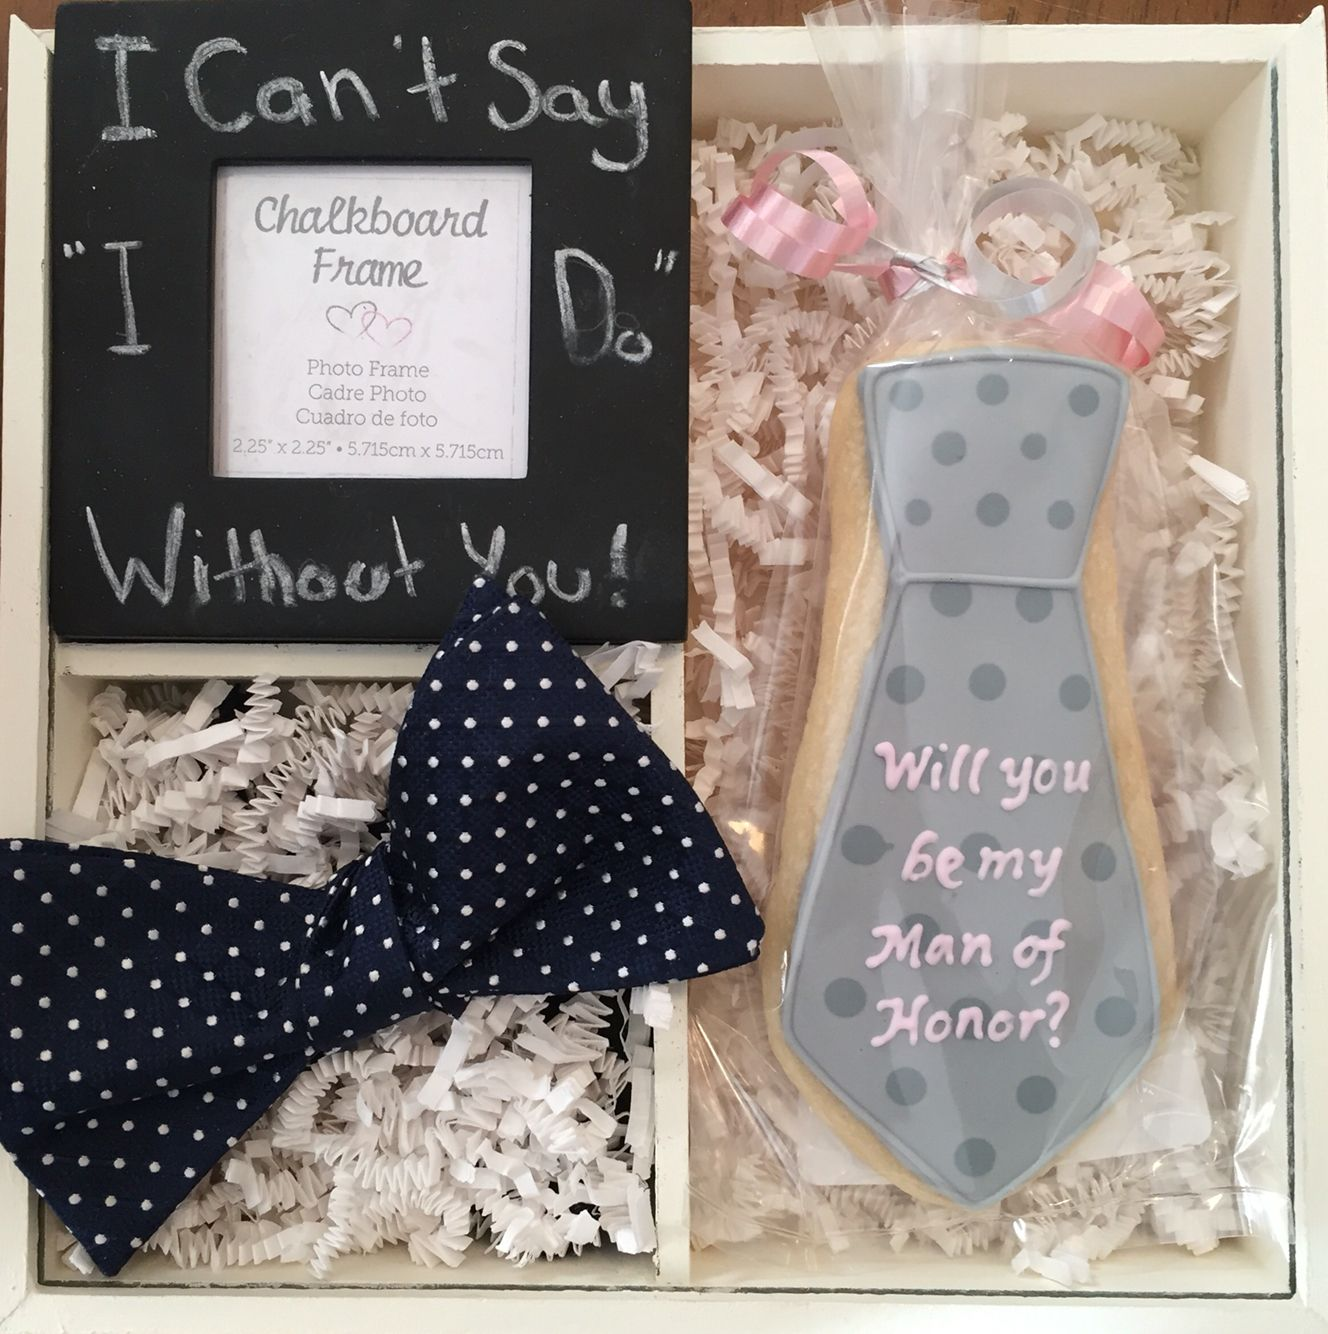 Man Of Honor Proposal Box Bridesman Proposal Gifts For Wedding Party Bridesmaid Proposal